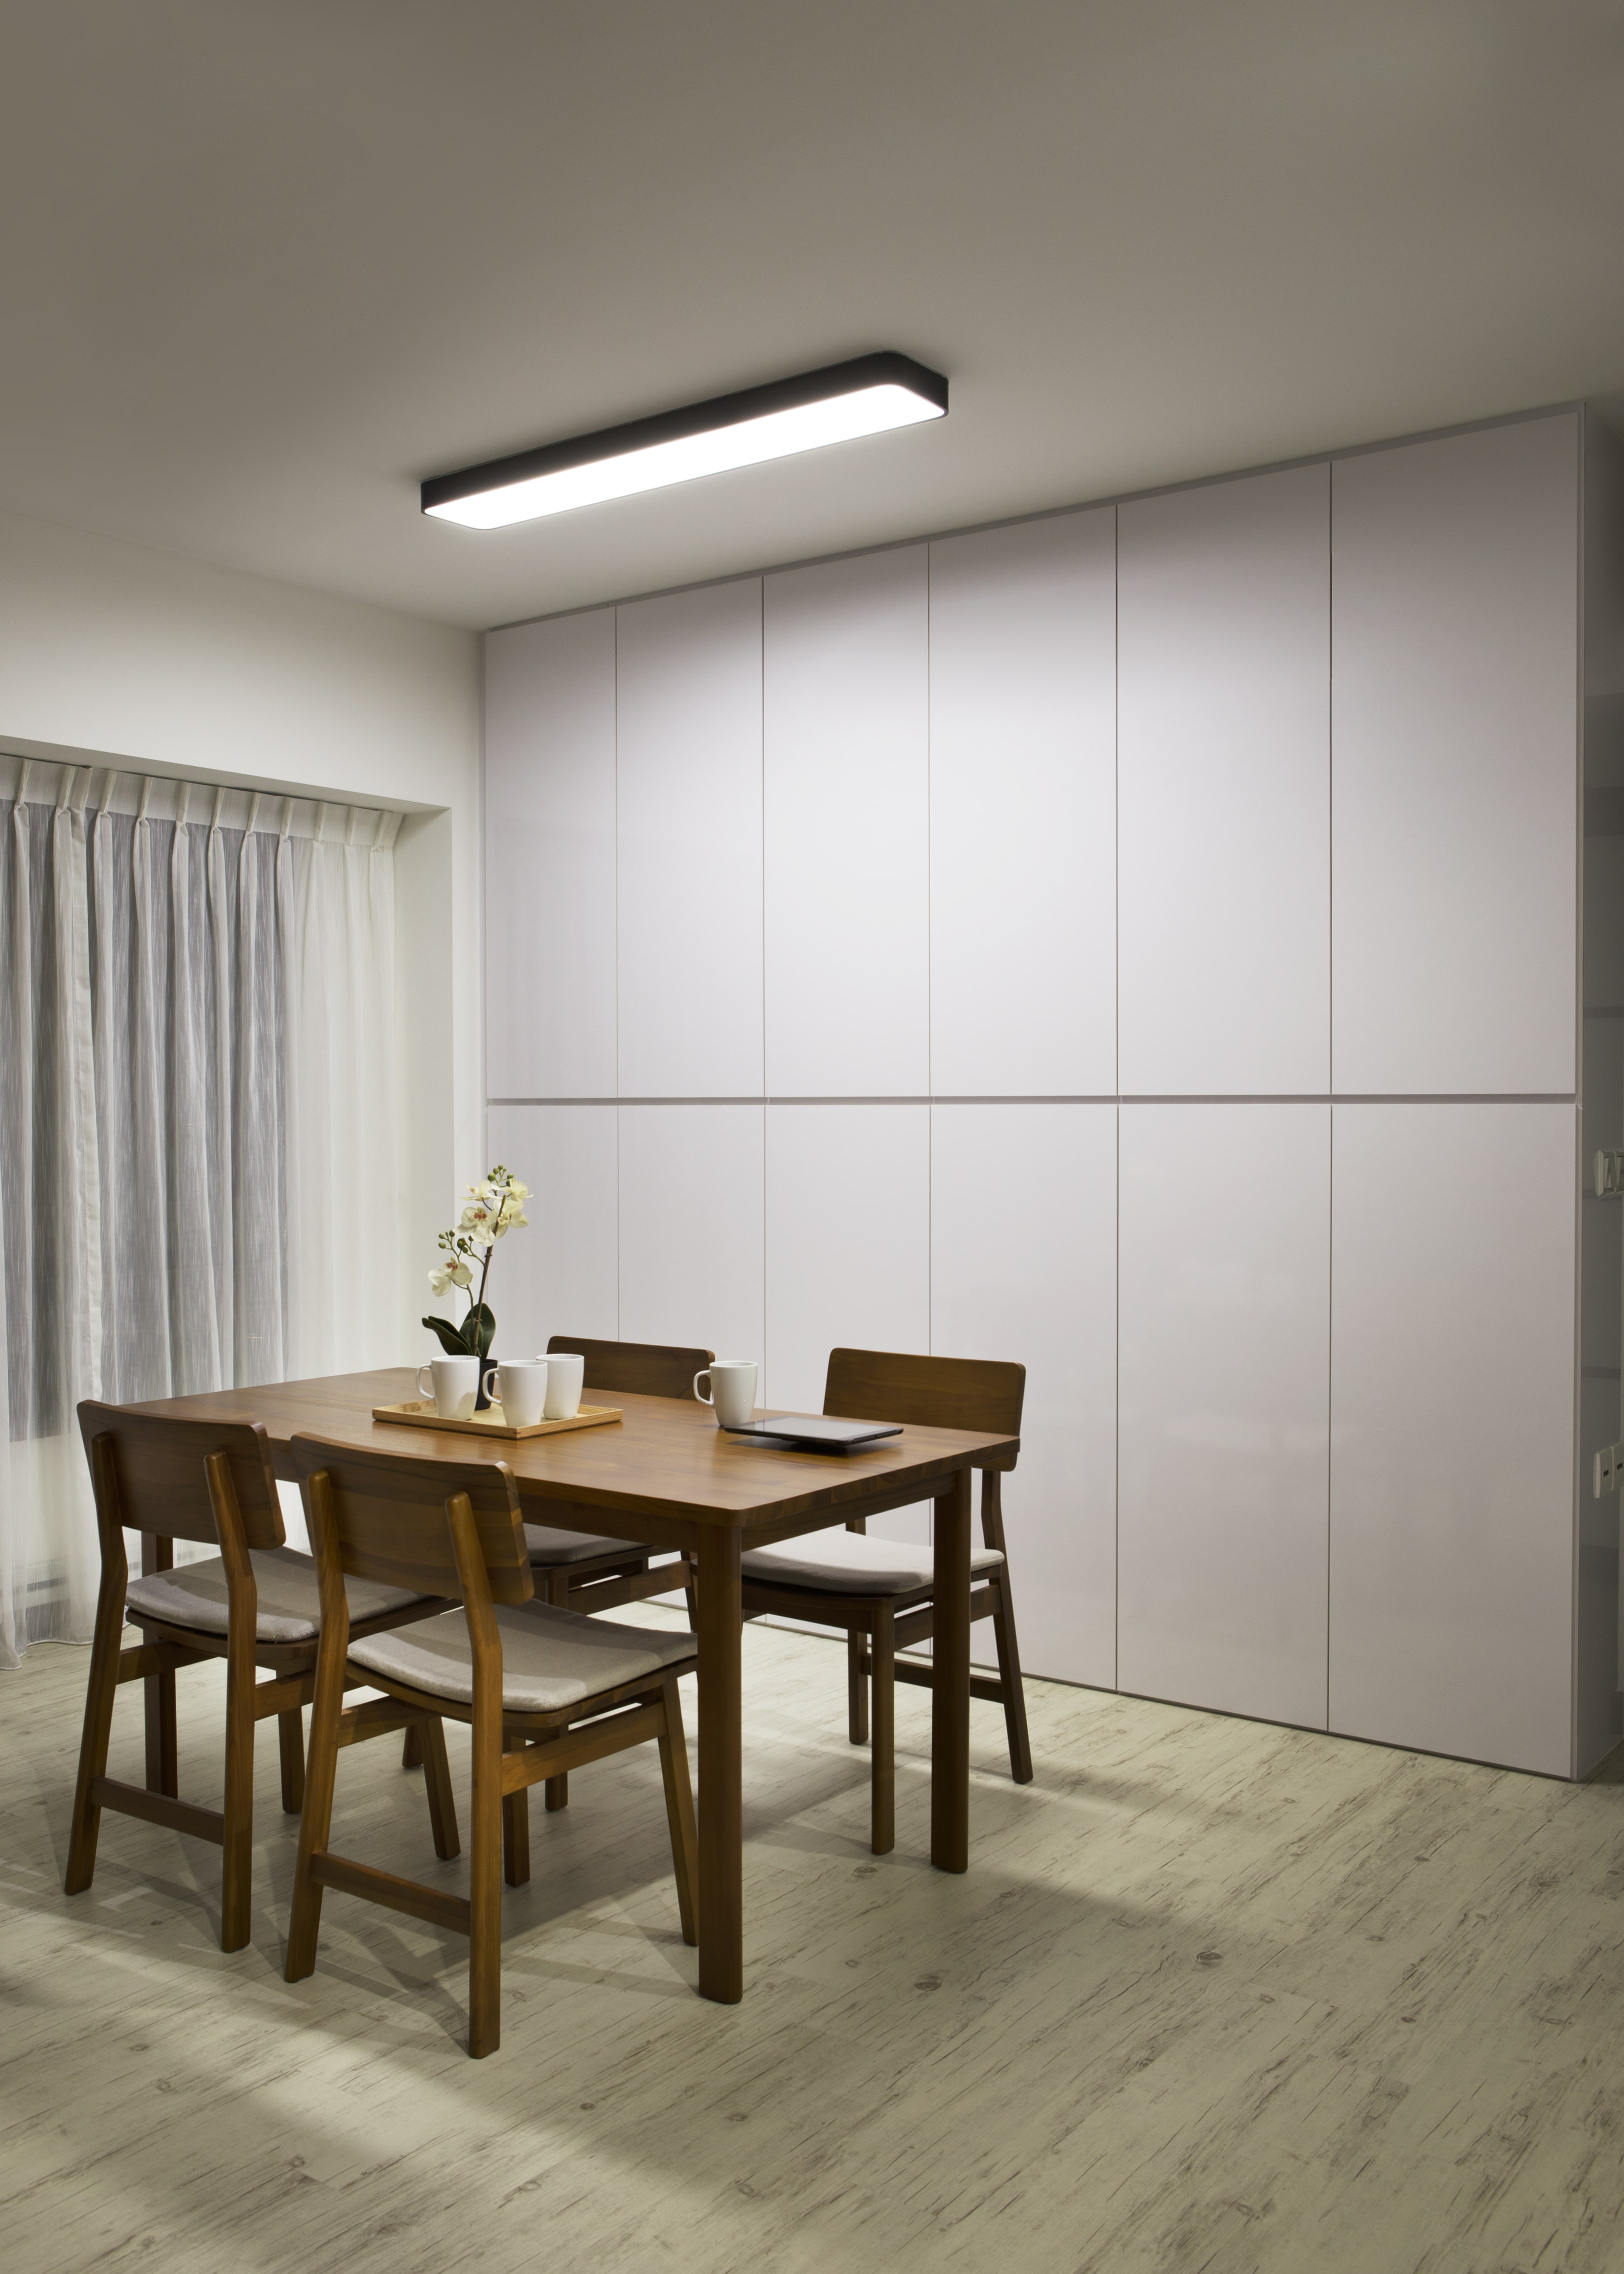 Minimalist interior design 1 home renovation singapore for Minimalist home design singapore